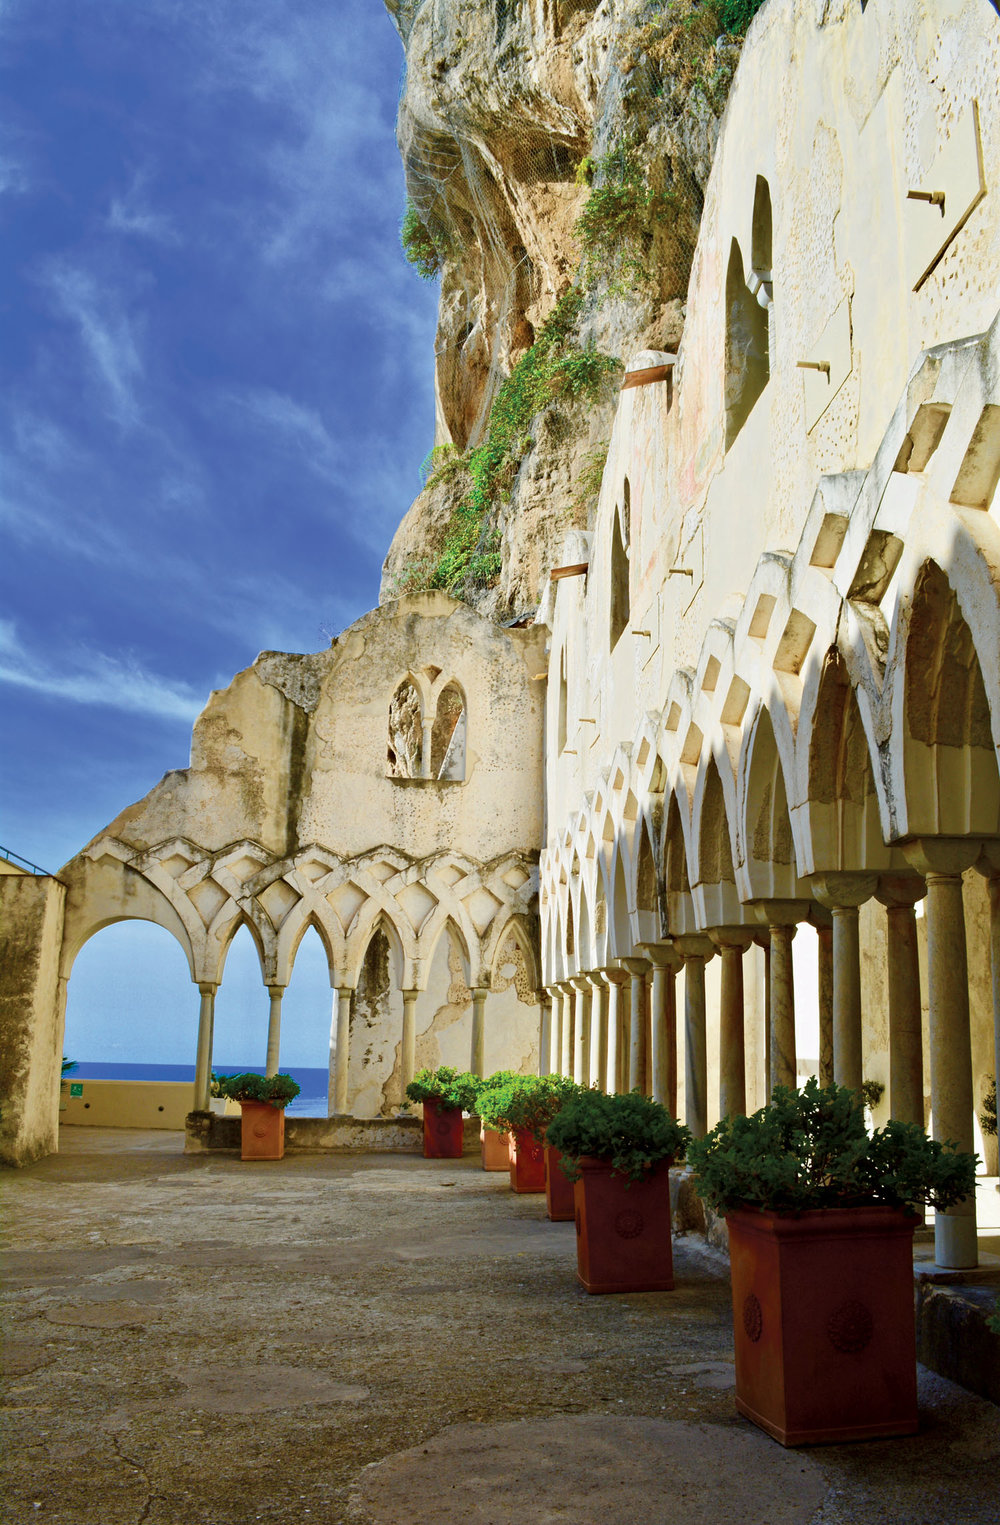 Thirteenth century cloister at Grand Hotel Convento di Amalfi.